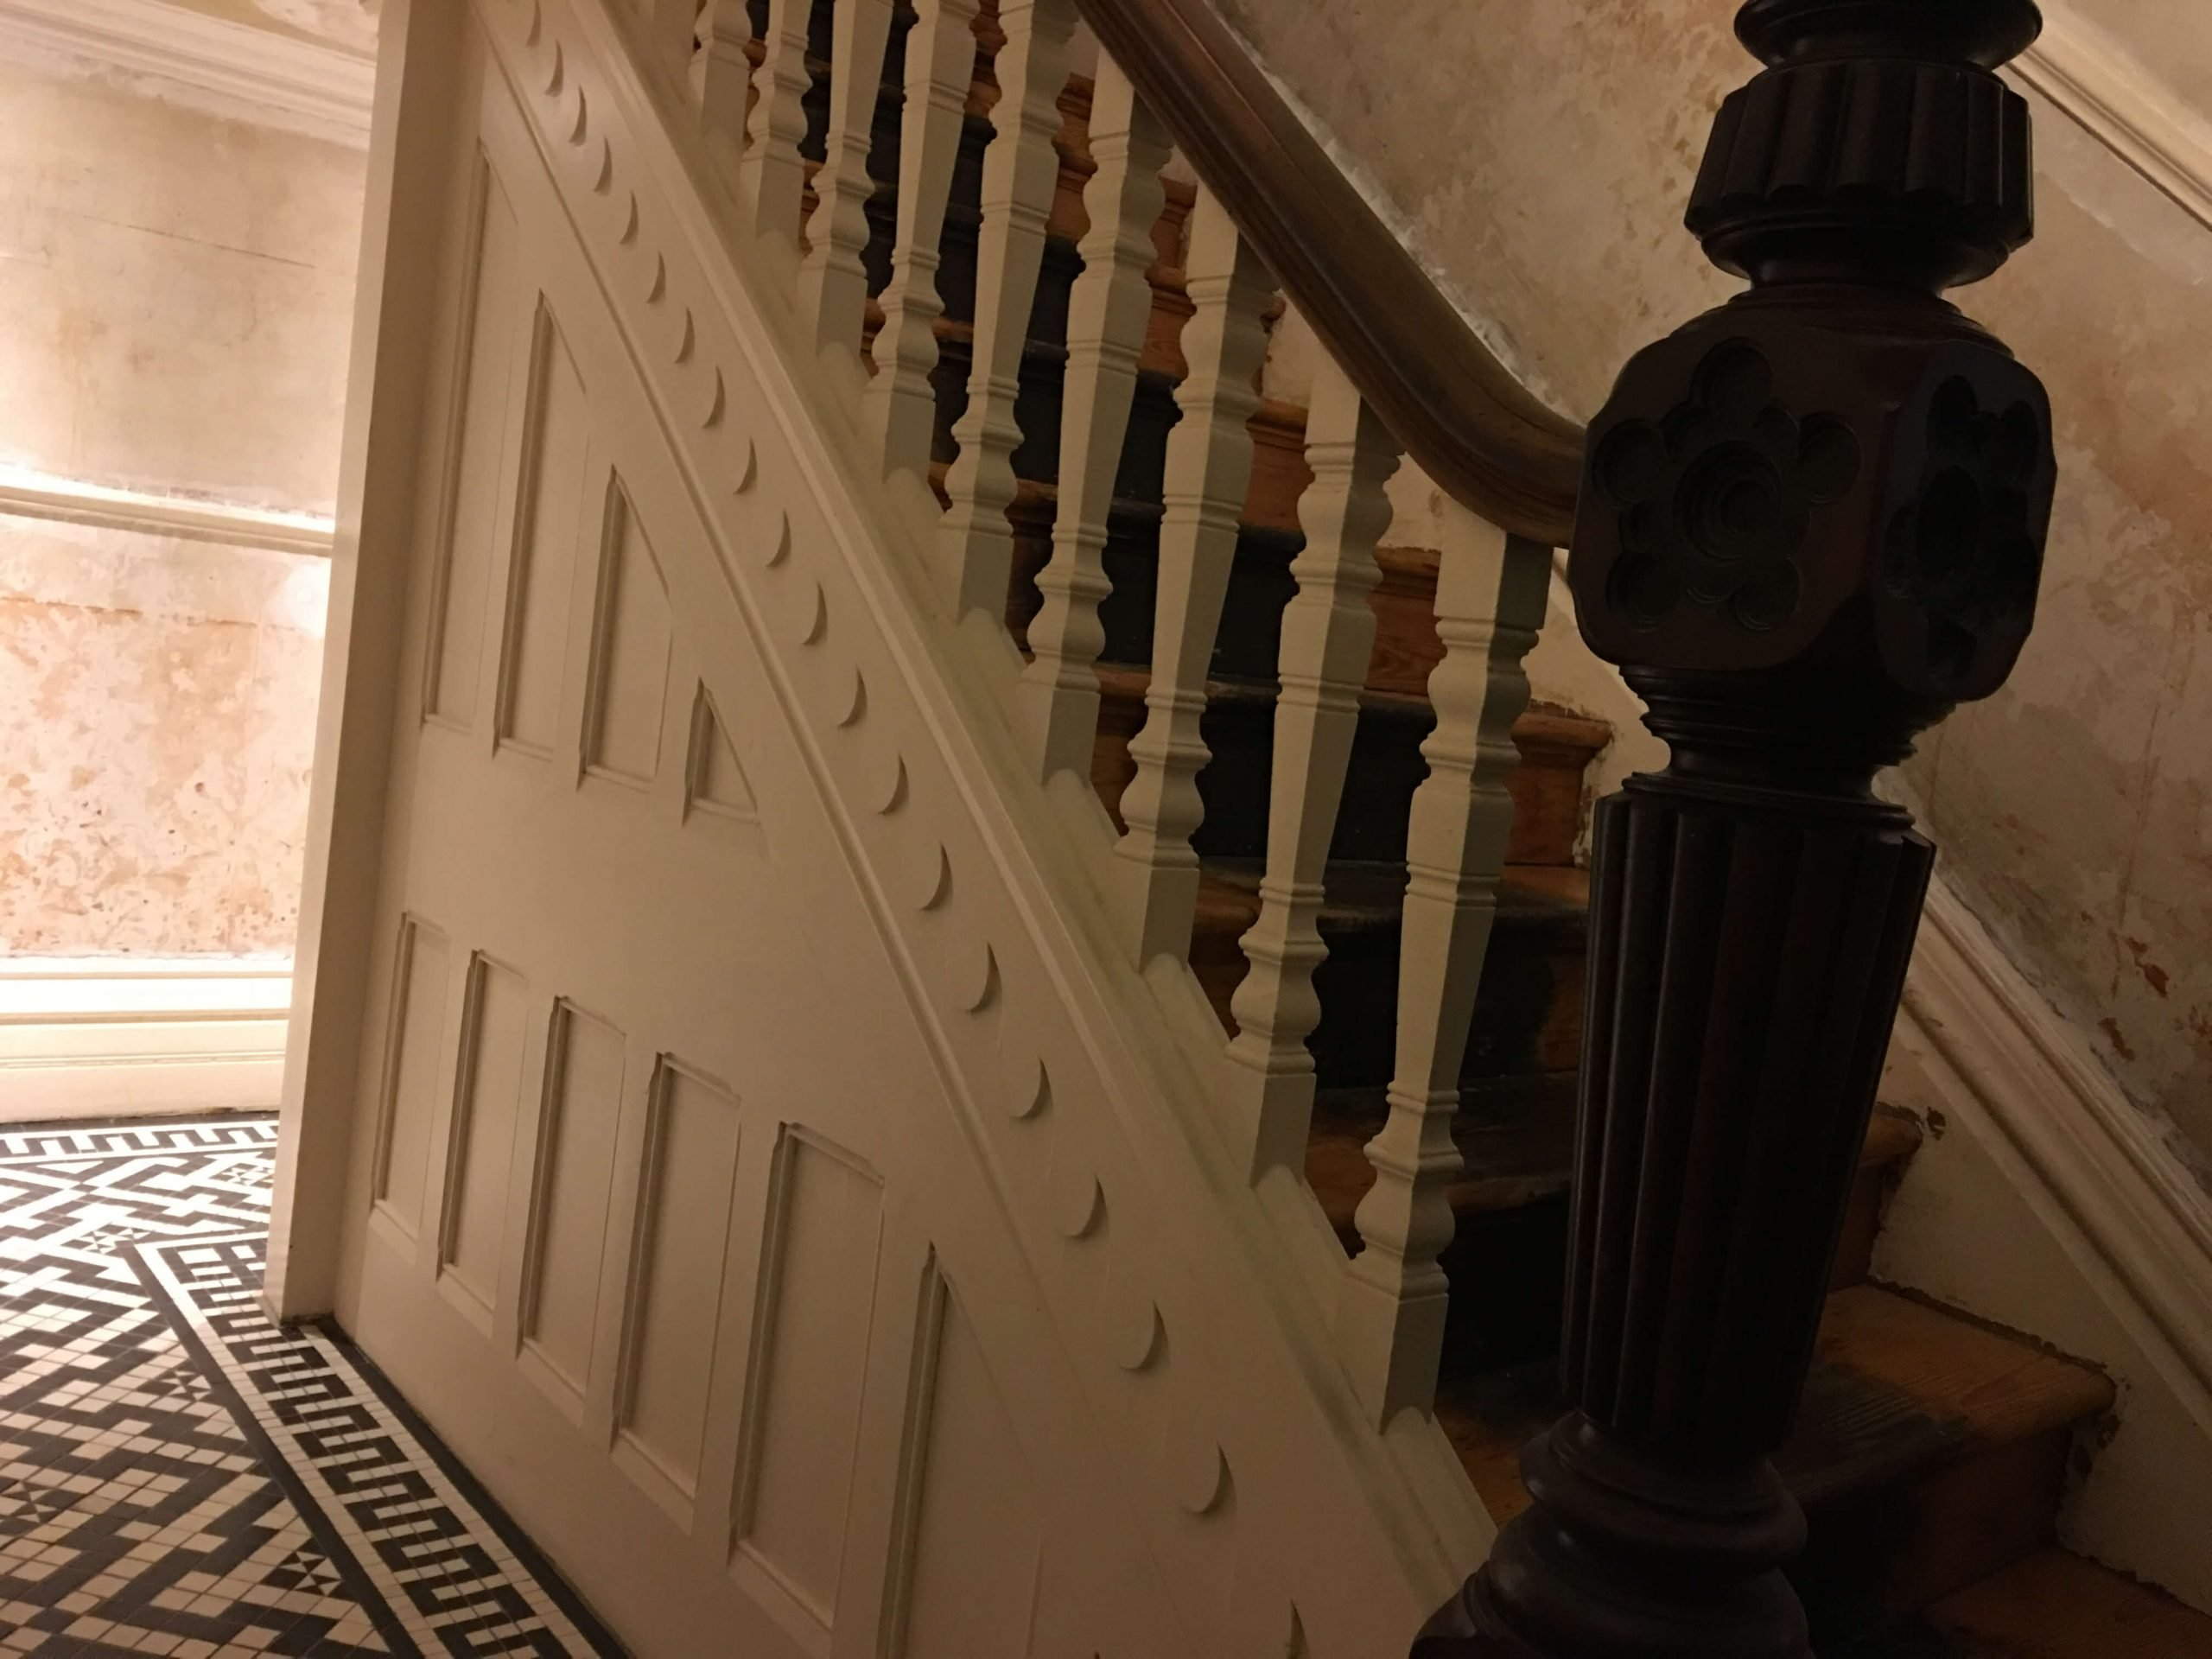 8. Handrail, Spindles & Newel Post 1